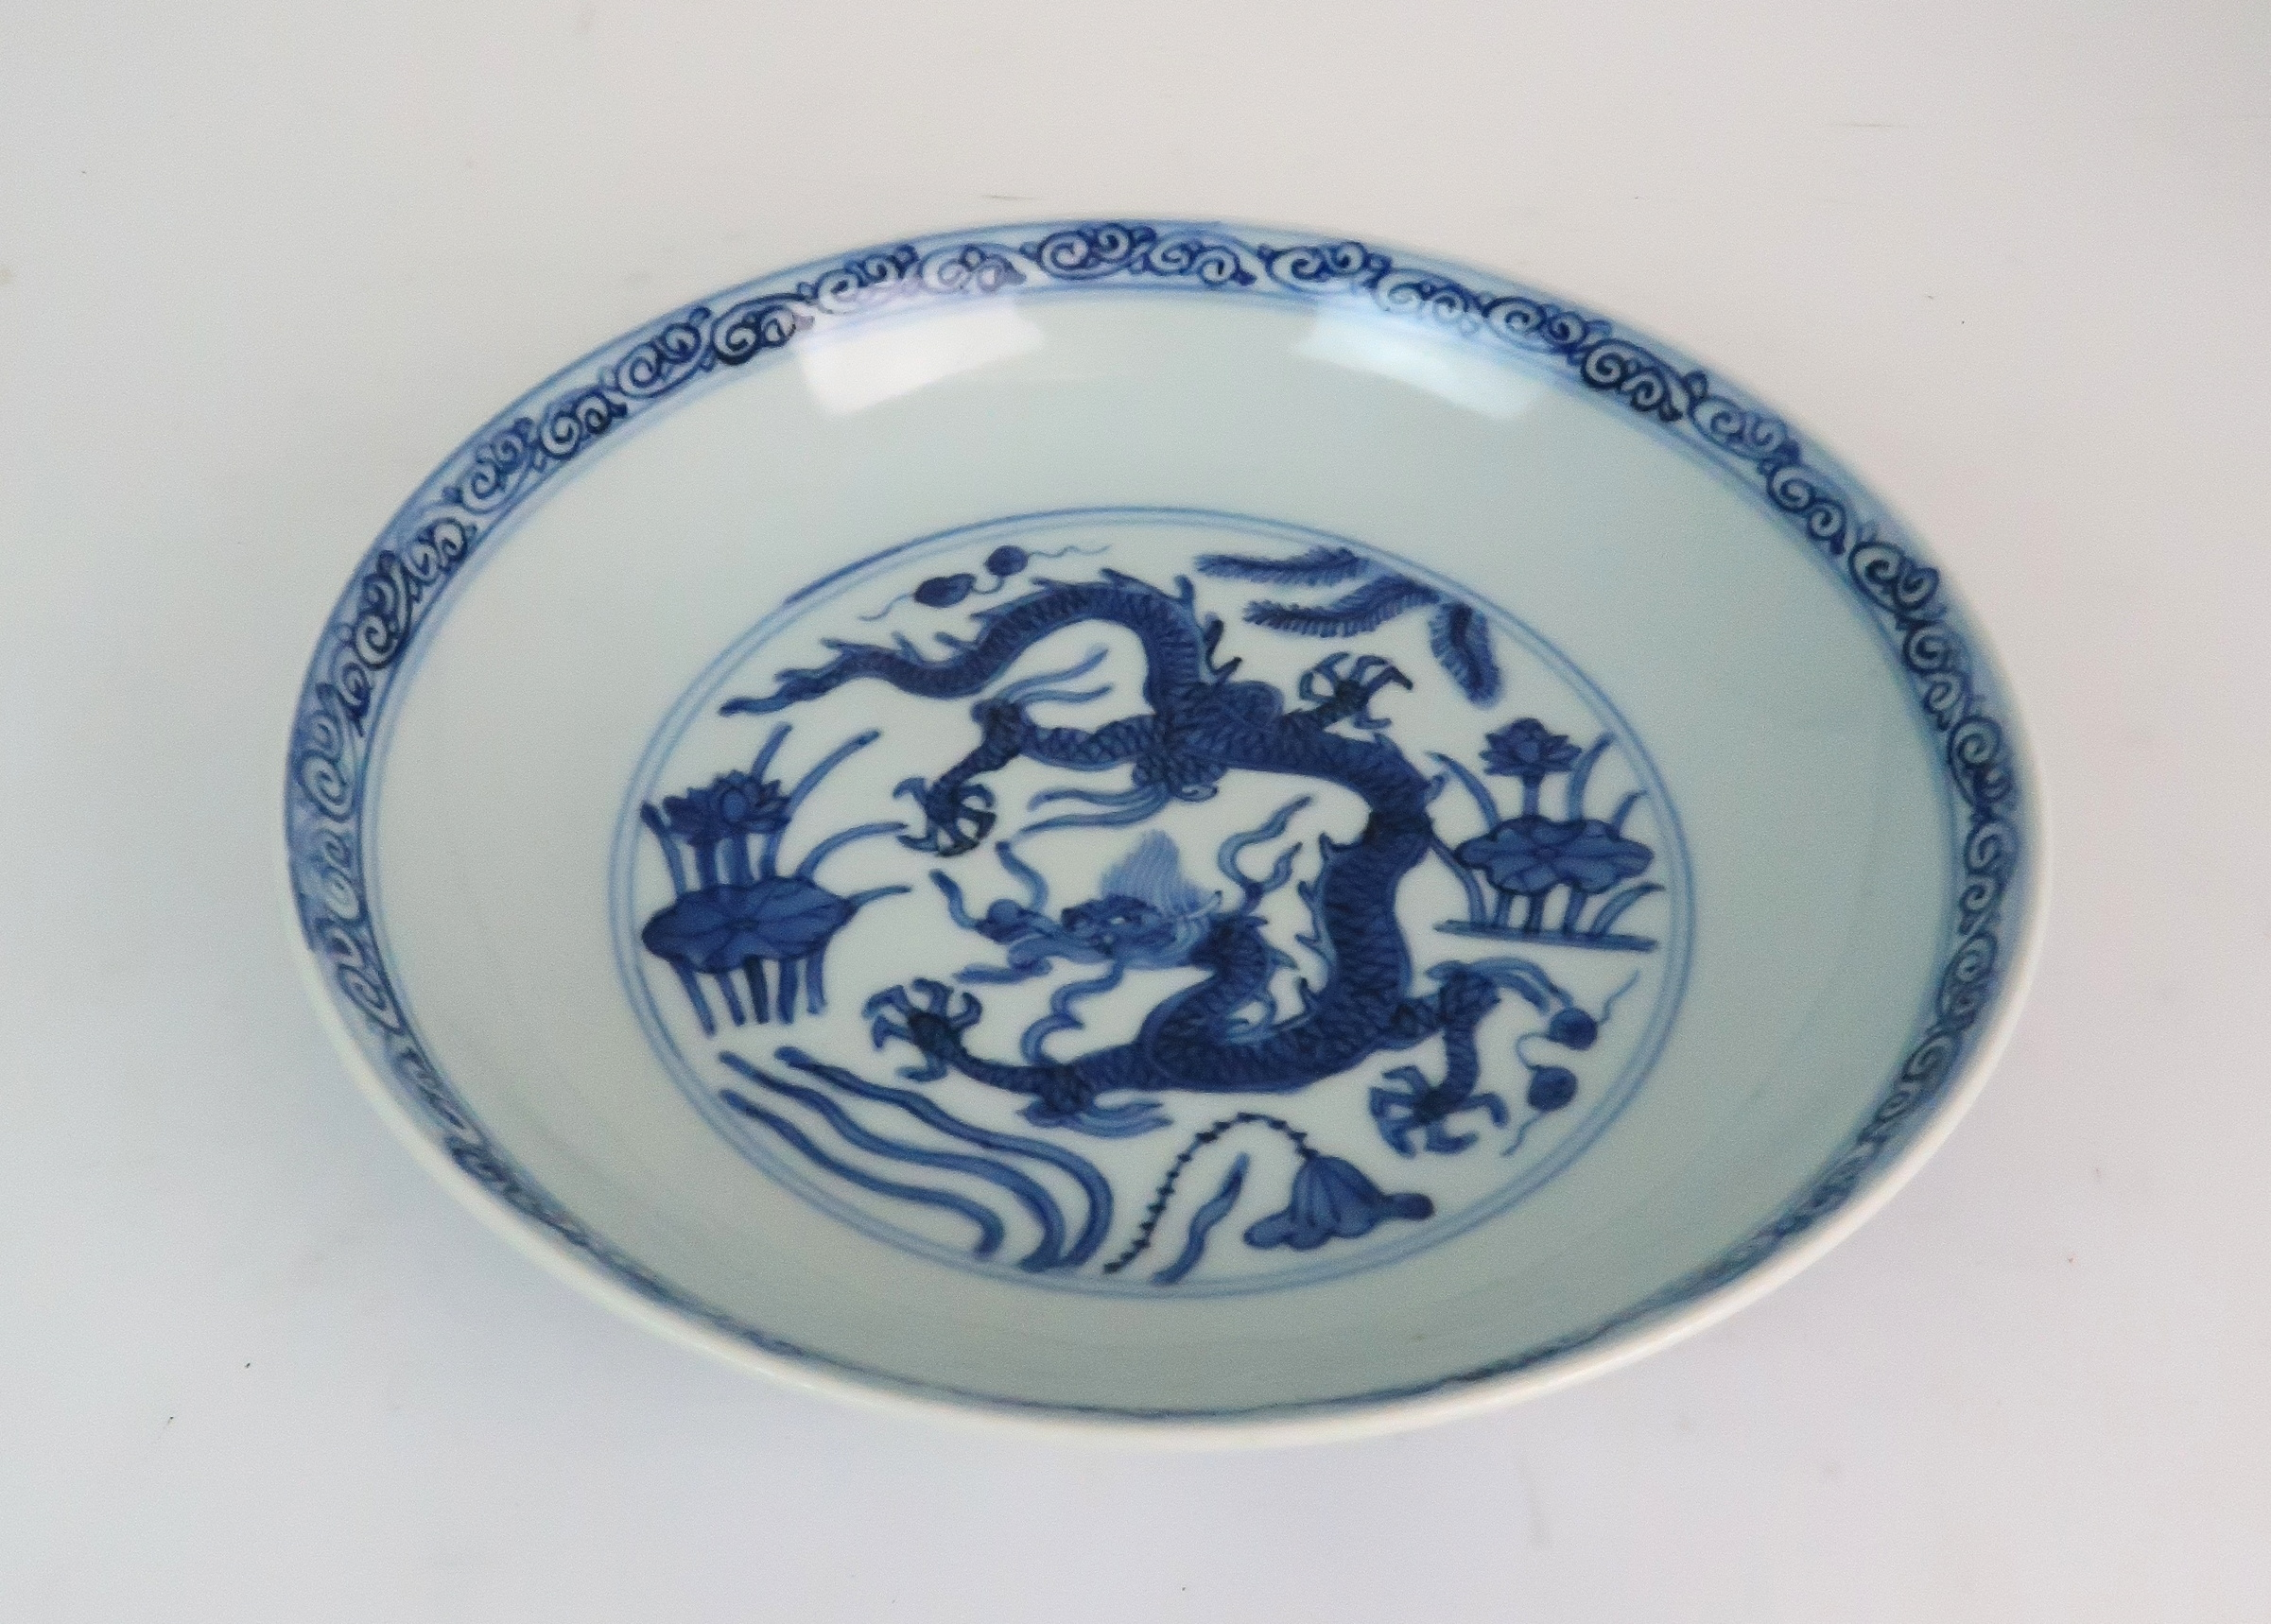 A CHINESE BLUE AND WHITE DISH painted with dragons amongst aquatic foliage, within a scrolling